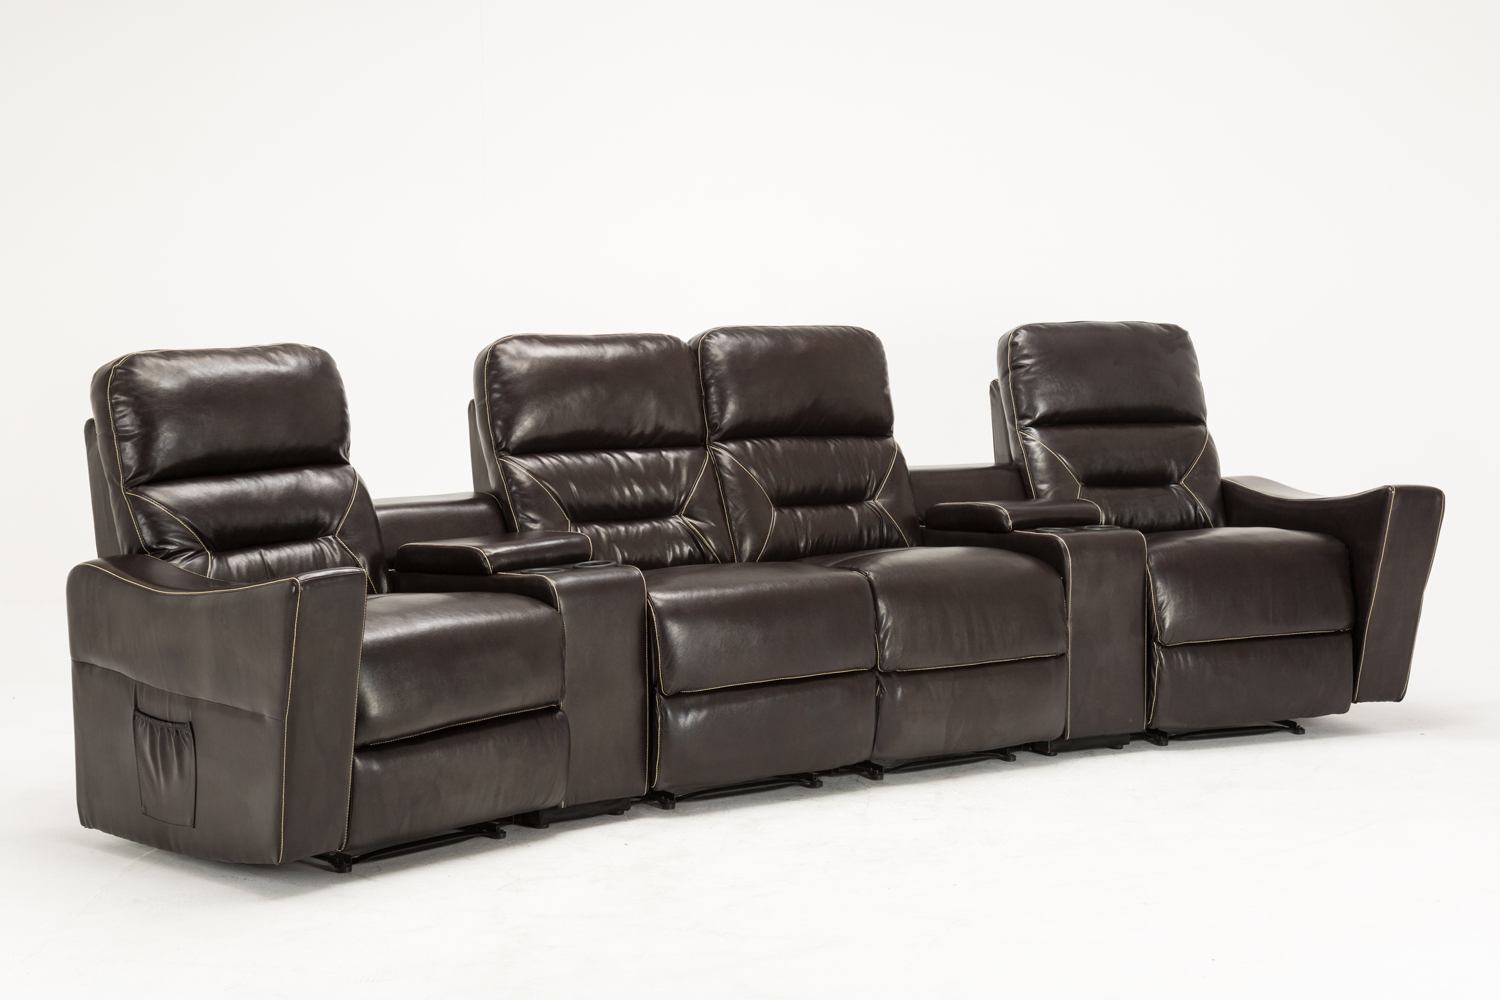 MCombo 4 Seat Leather Home Theater Recliner Media Sofa w  : 6160 7095BR2 from www.ebay.com size 1500 x 1000 jpeg 541kB